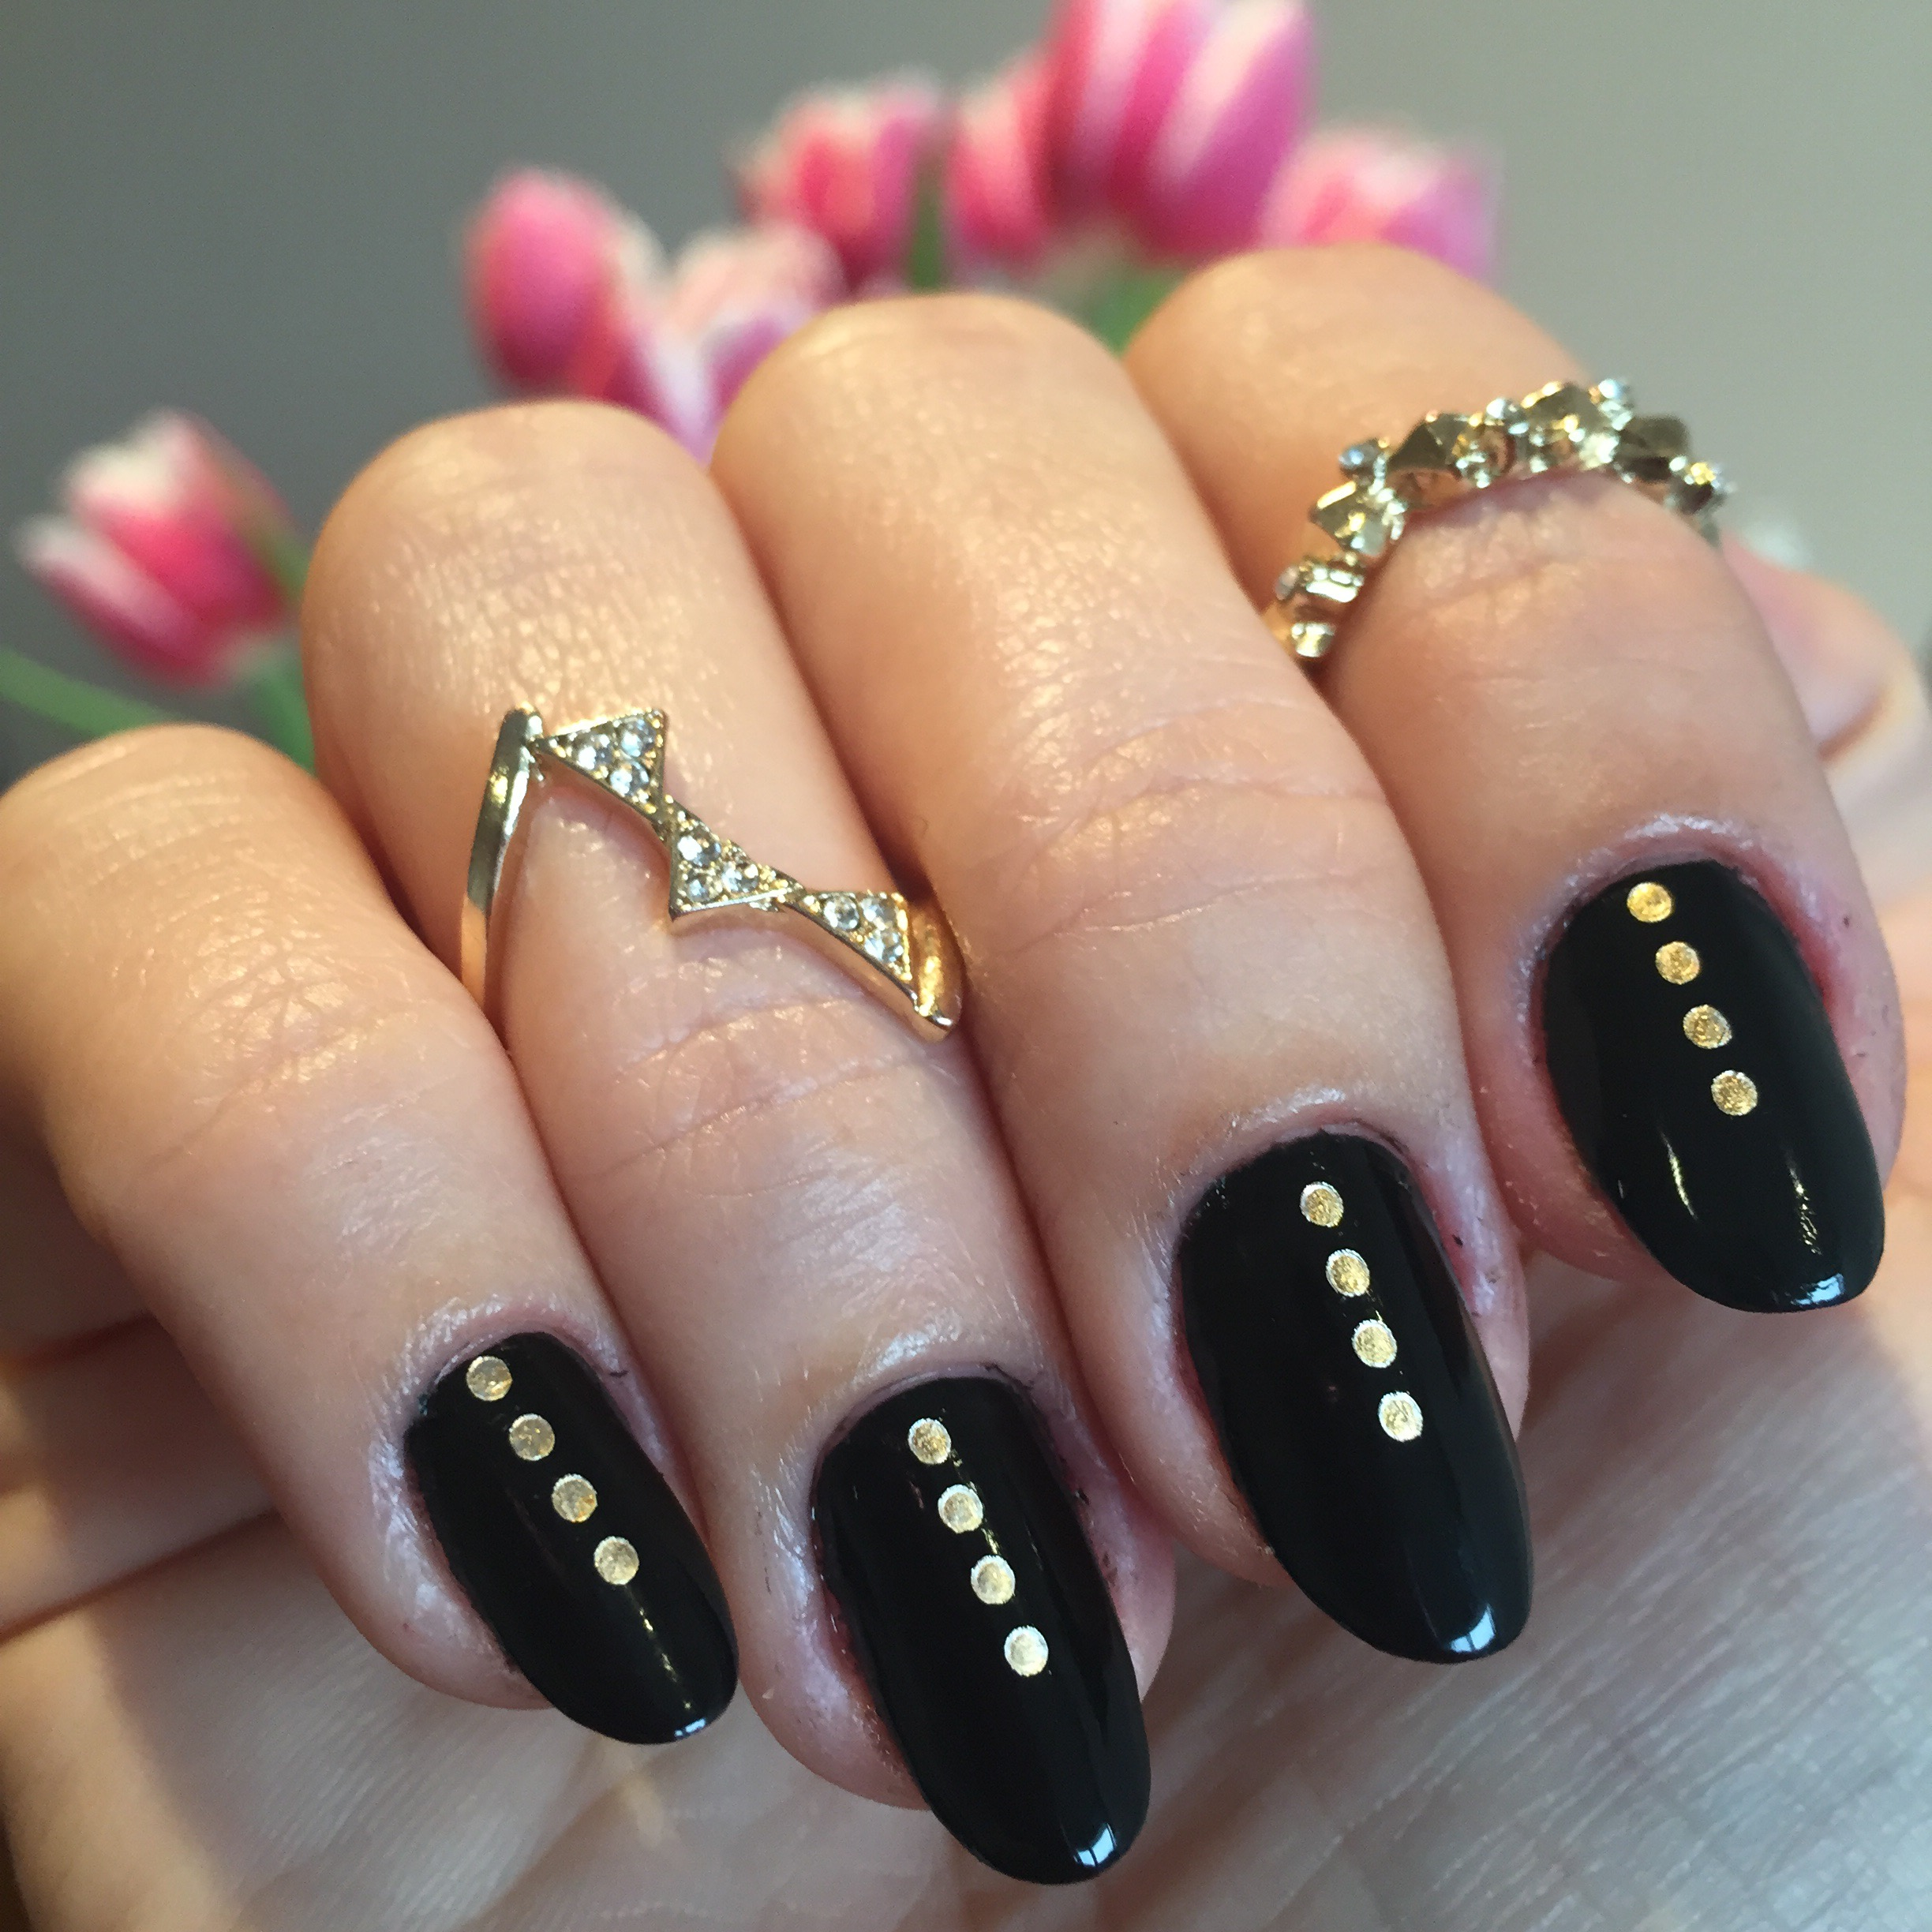 Nails of the week: black with gold dots | So Many Lovely Things